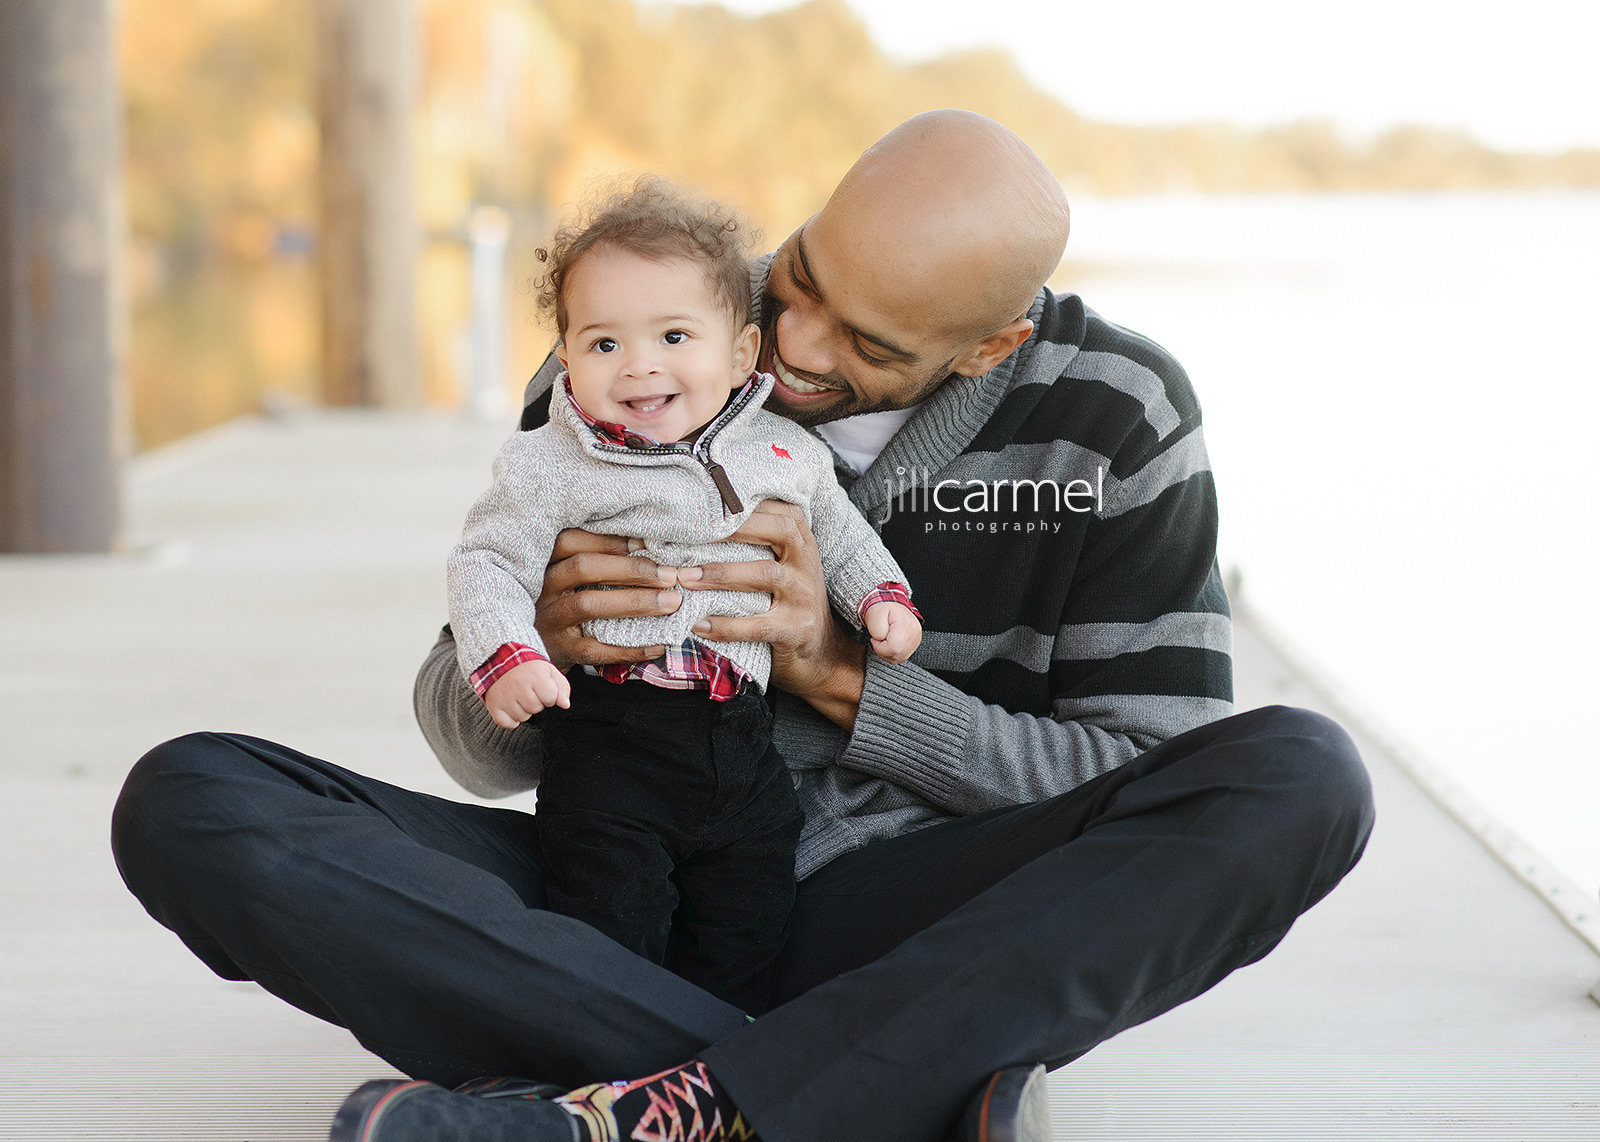 Vince Carter with Baby Boy Sitting at the Dock